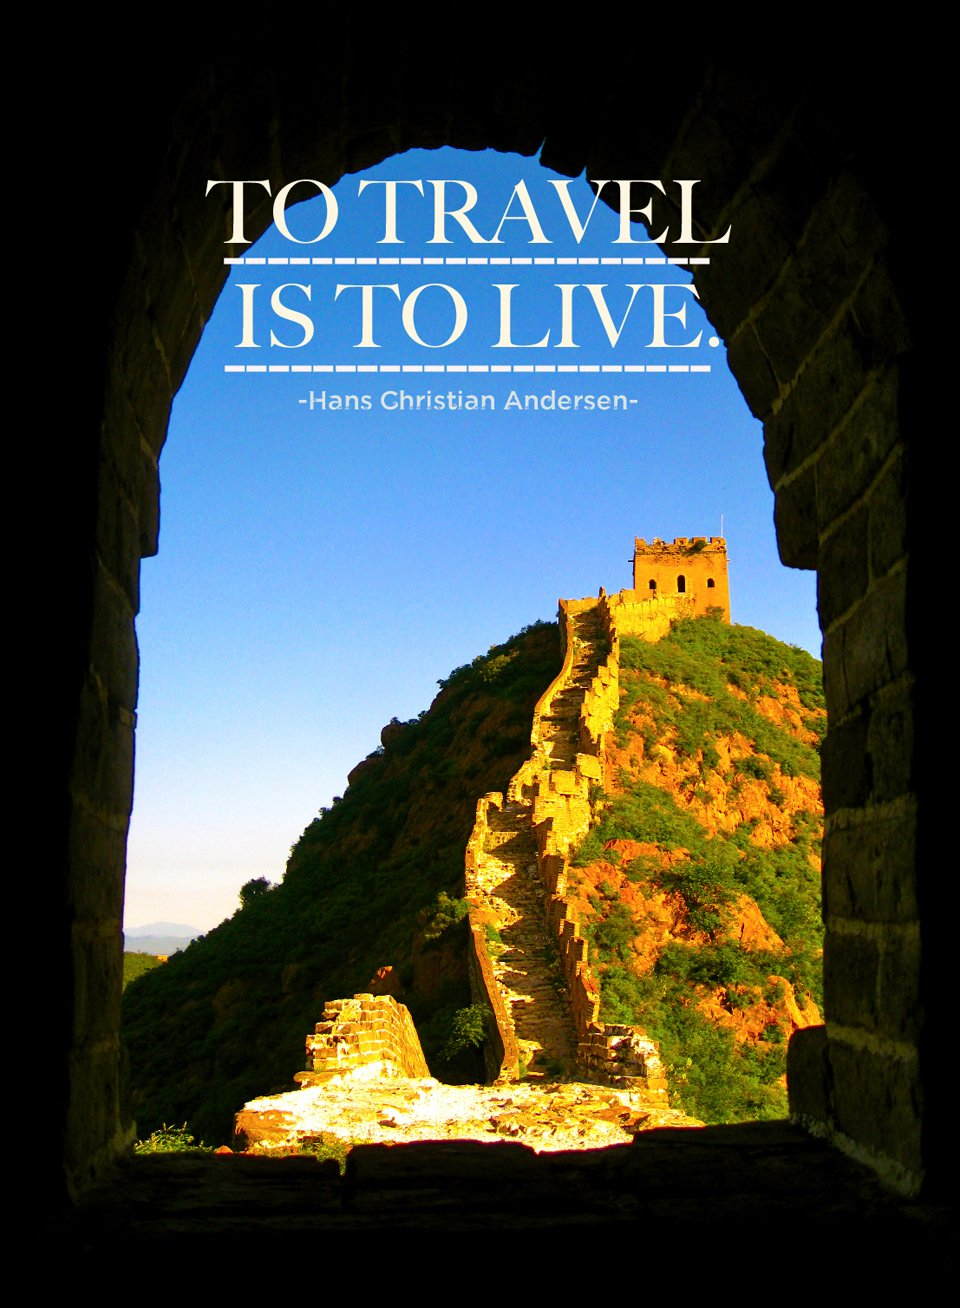 """To travel is to live.""  -Hans Christian Andersen-"